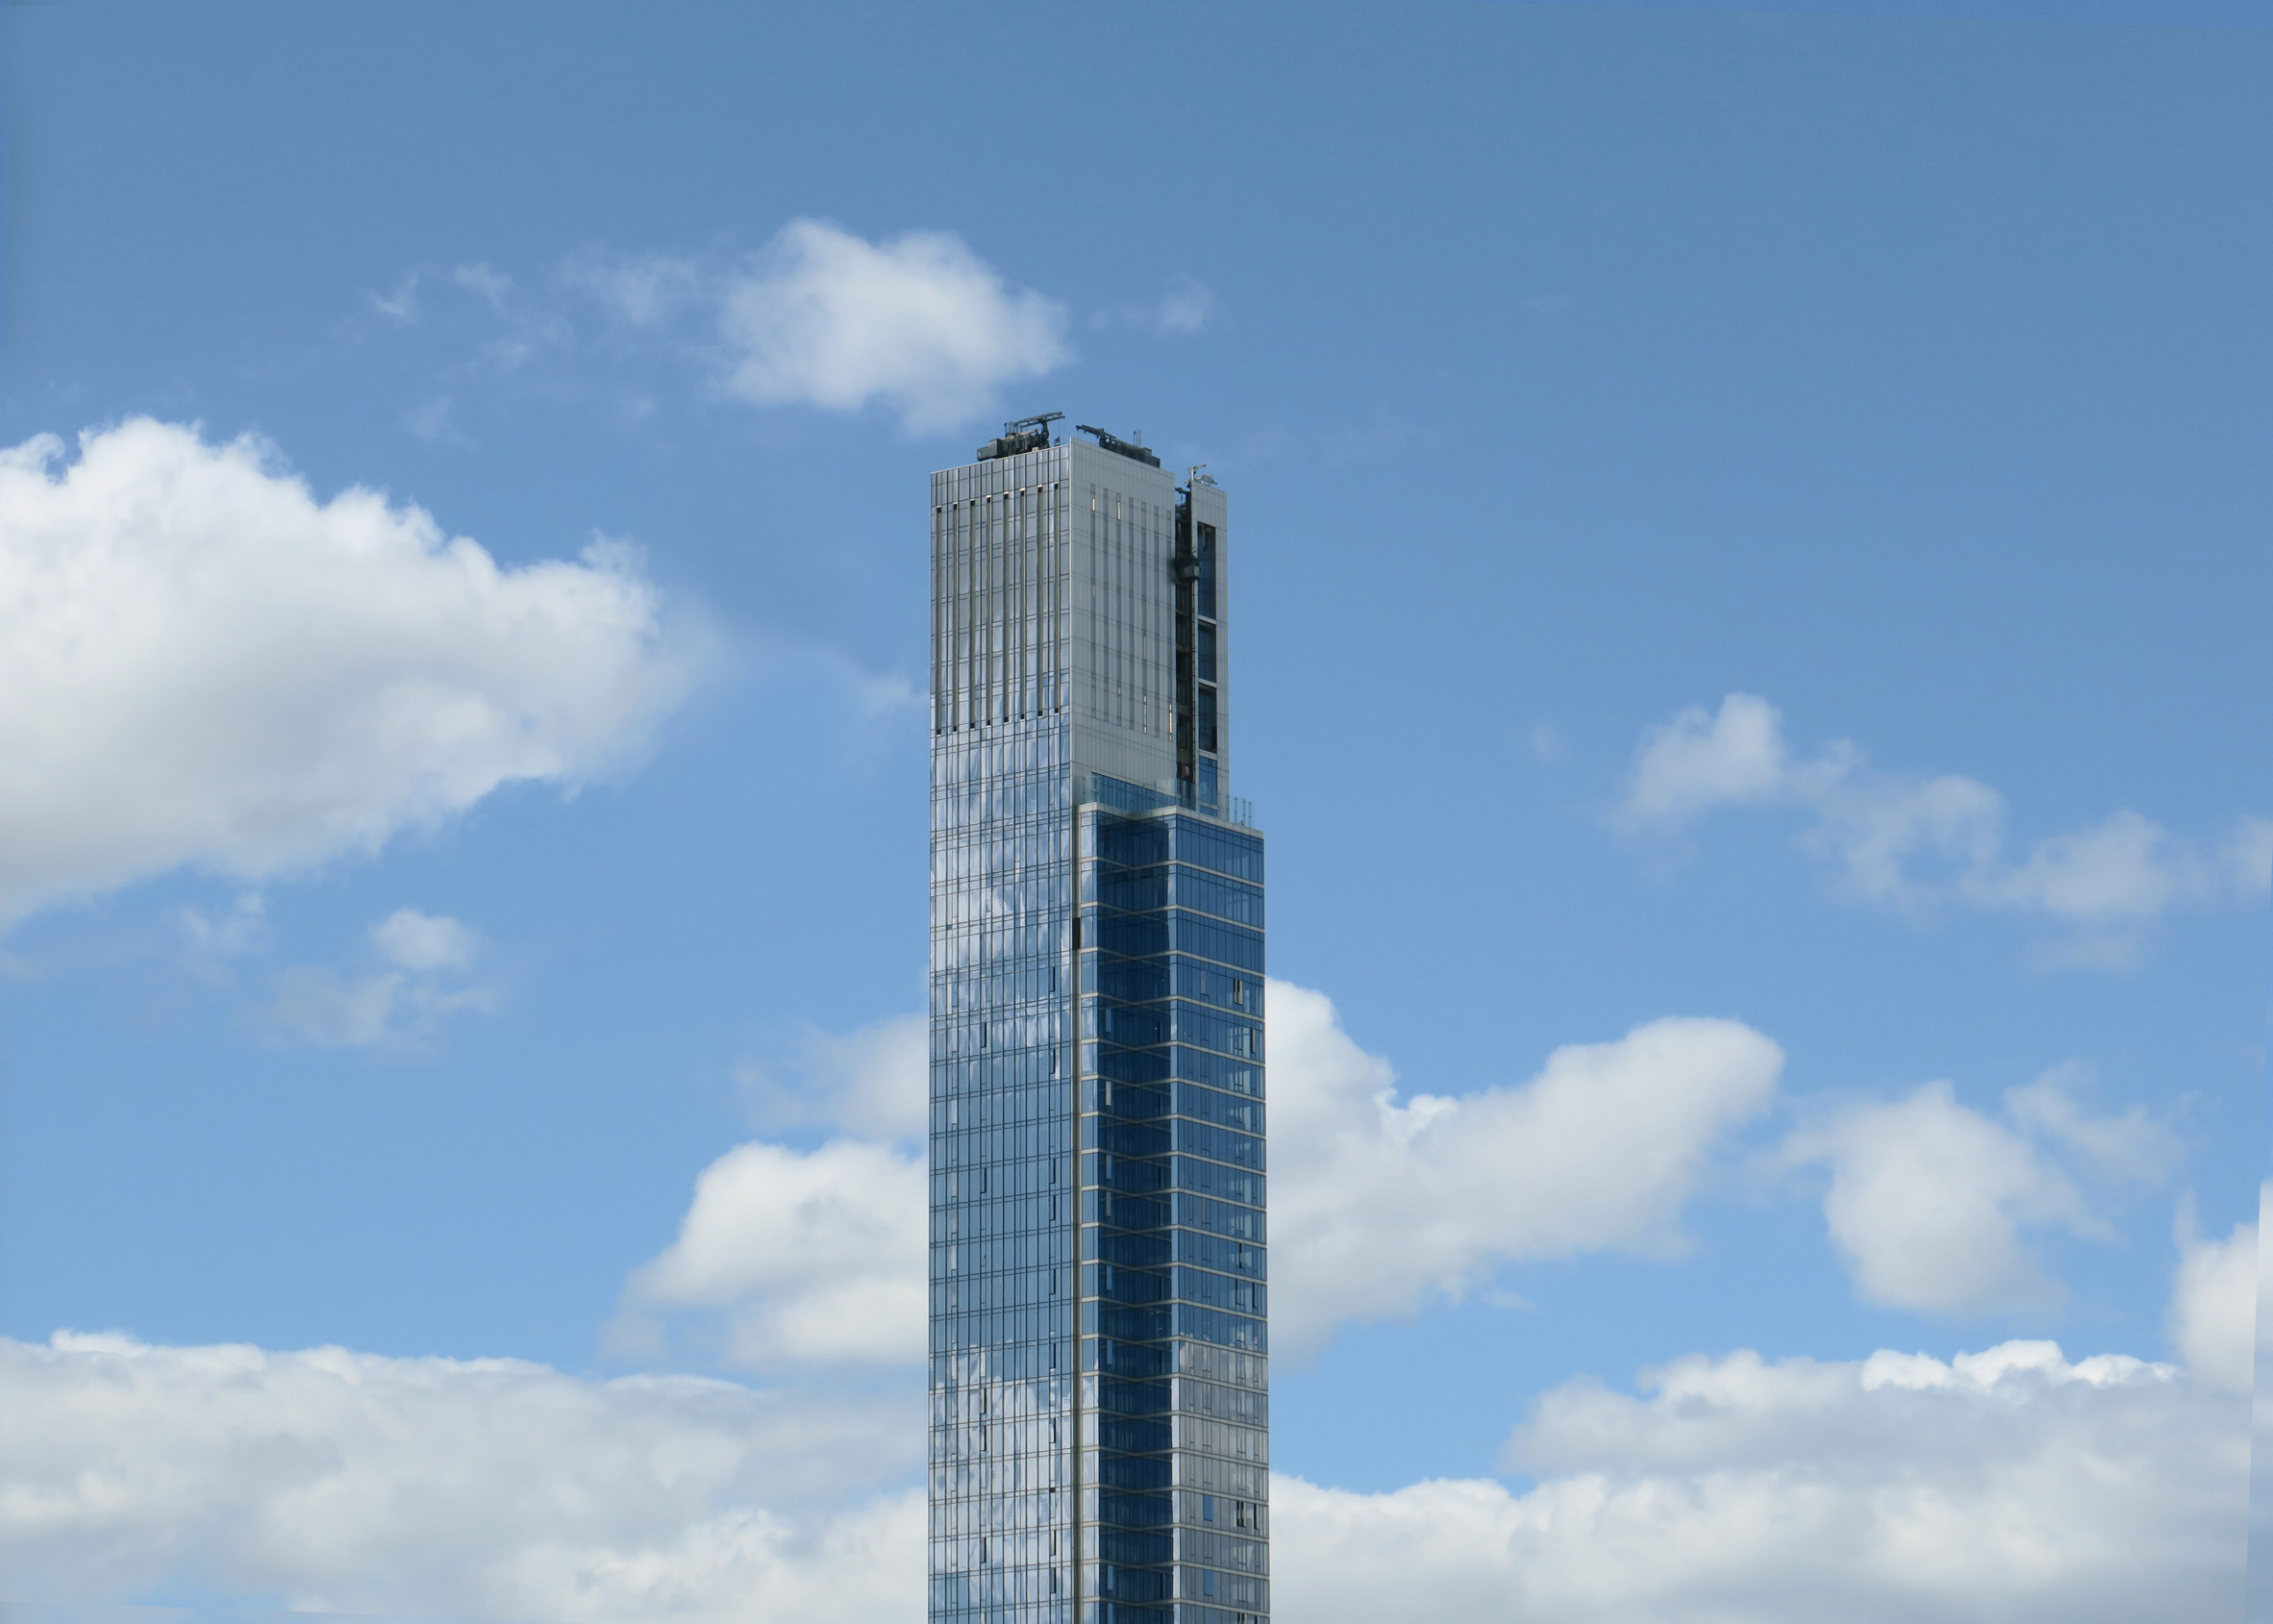 Reflective glass facade of Central Park Tower